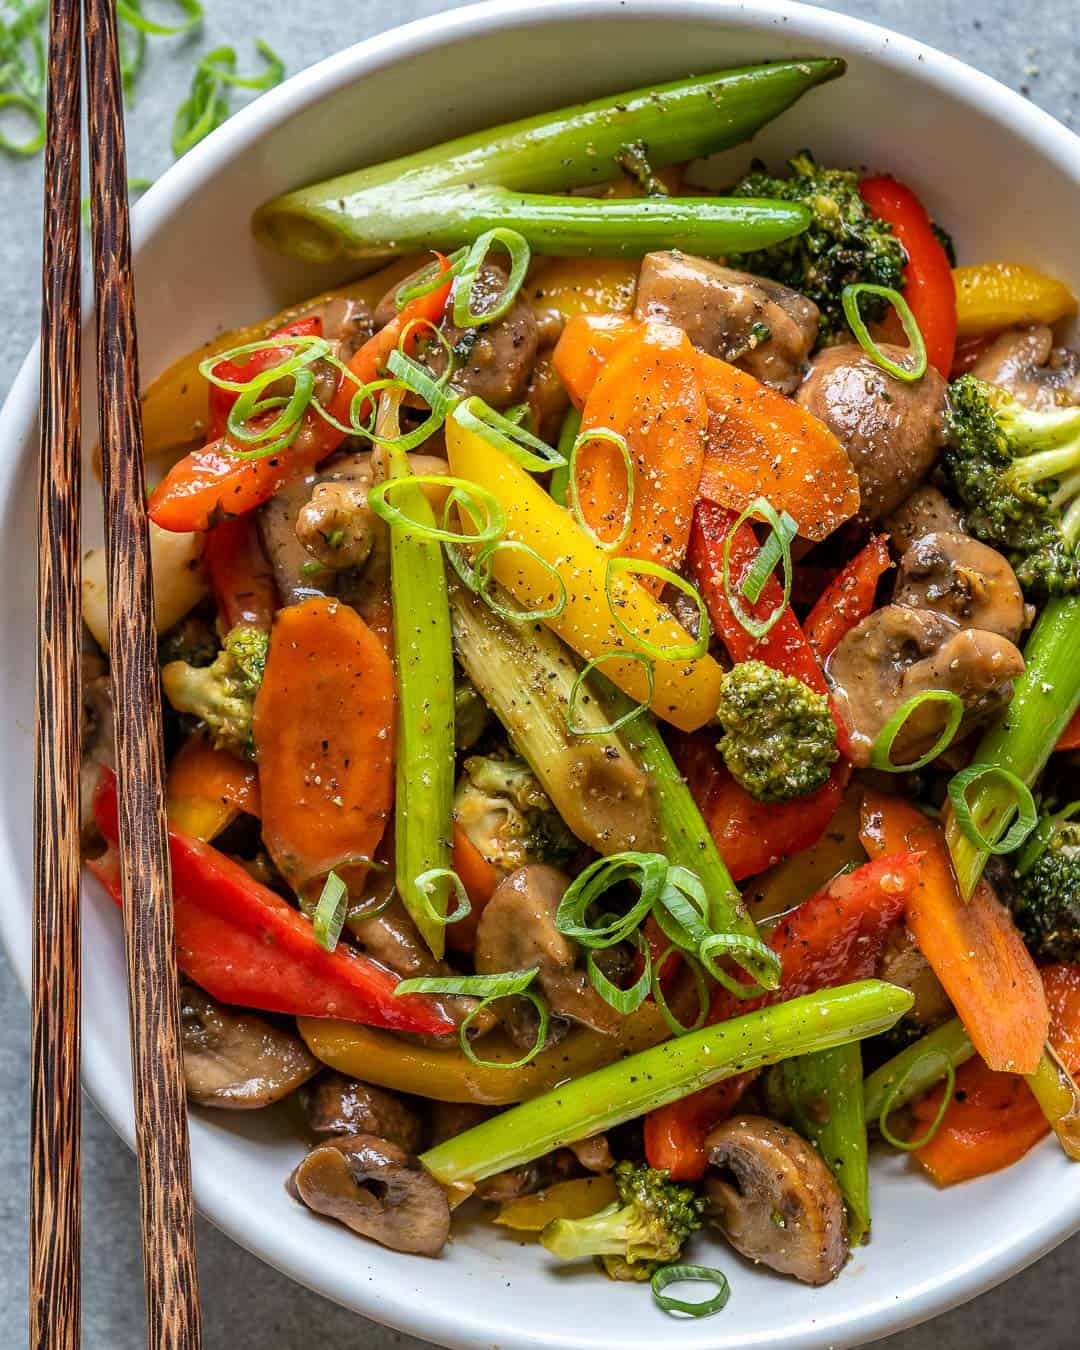 Sweet & sour vegetable stir fry in white bowl with chopsticks.